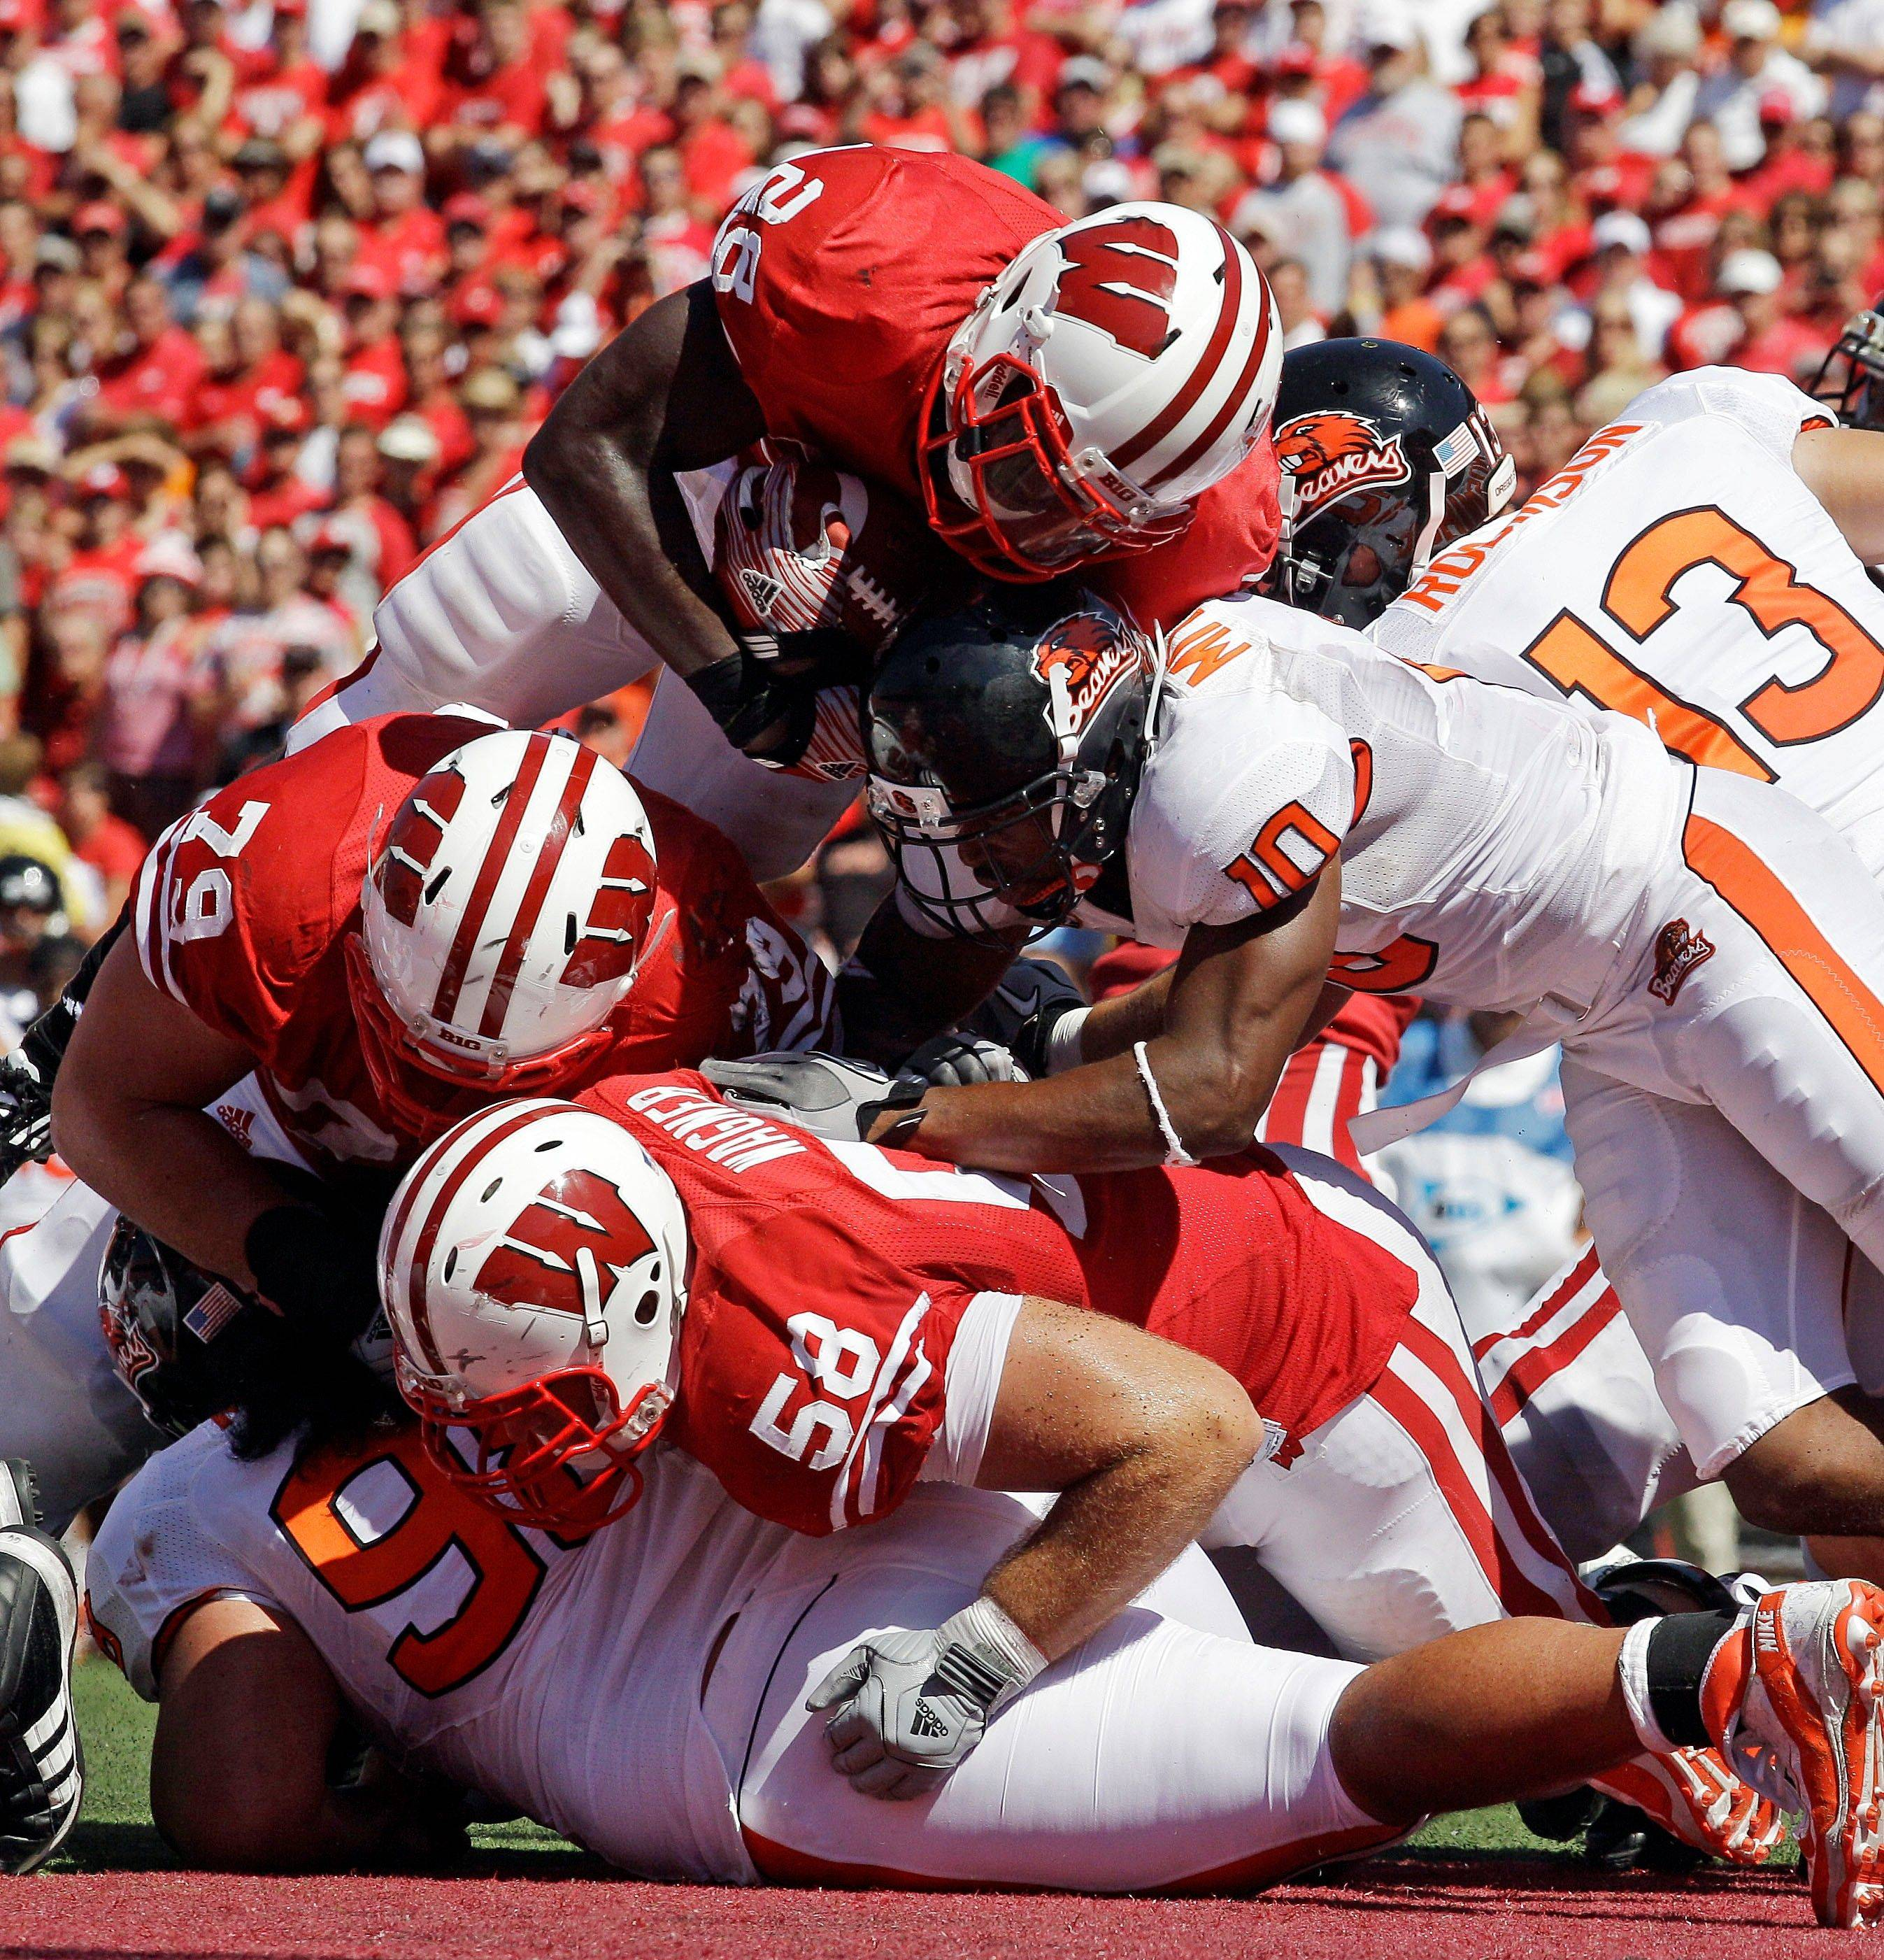 Wisconsin's Montee Ball (28) leaps over teammates Ryan Groy (79), Ricky Wagner (58) and Oregon State's Lance Mitchell (10) for a touchdown run during the second half Saturday. Wisconsin beat Oregon State 35-0.